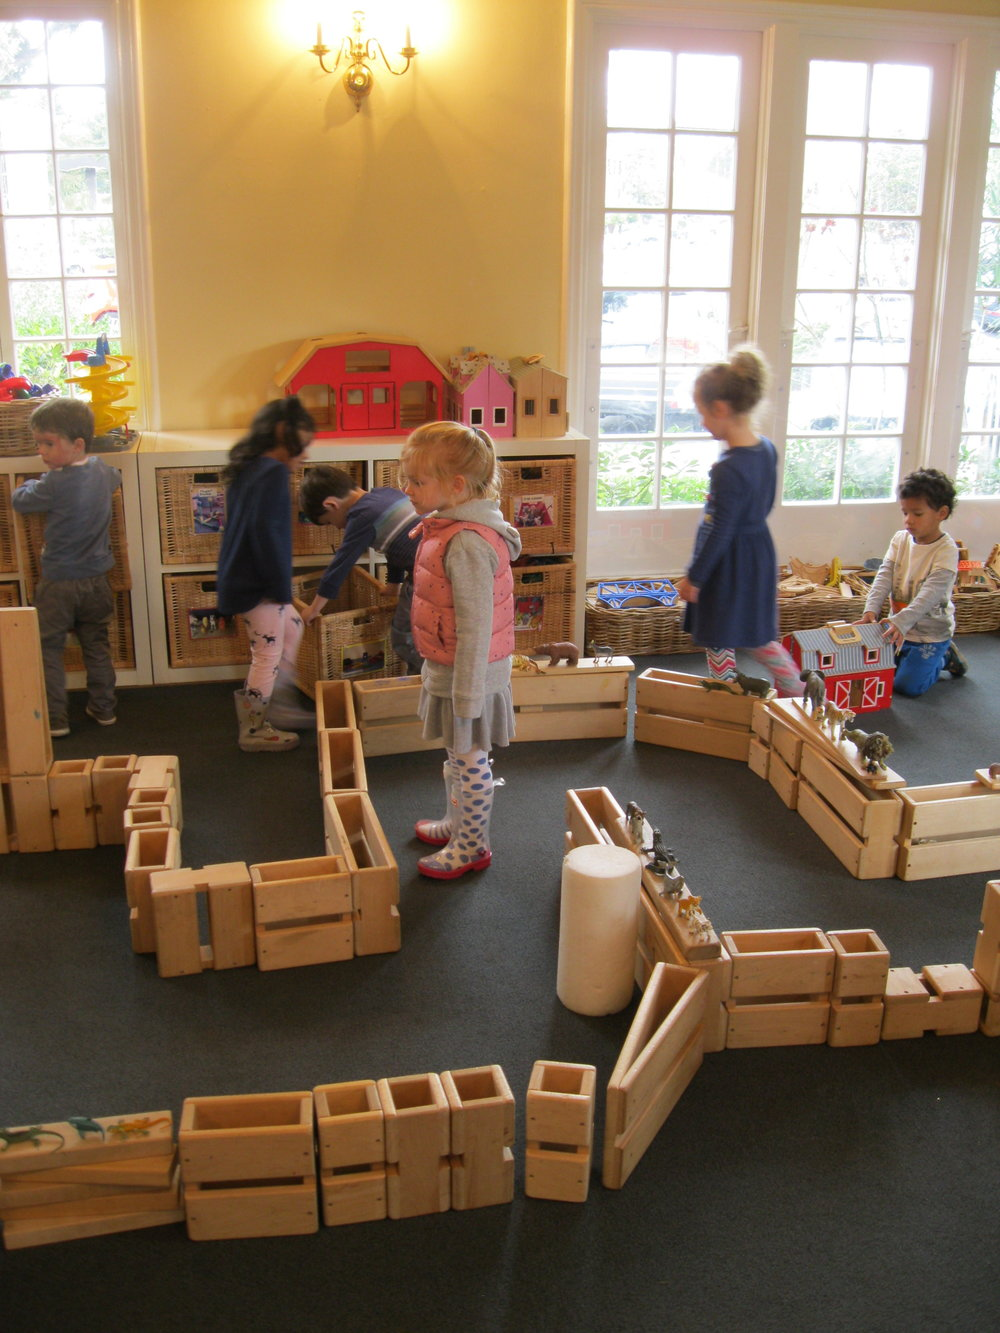 Block Room   Block building bridges the world of pretend and reality. It provides for spatial relationships, opportunities for sharing and develops large and small muscle control